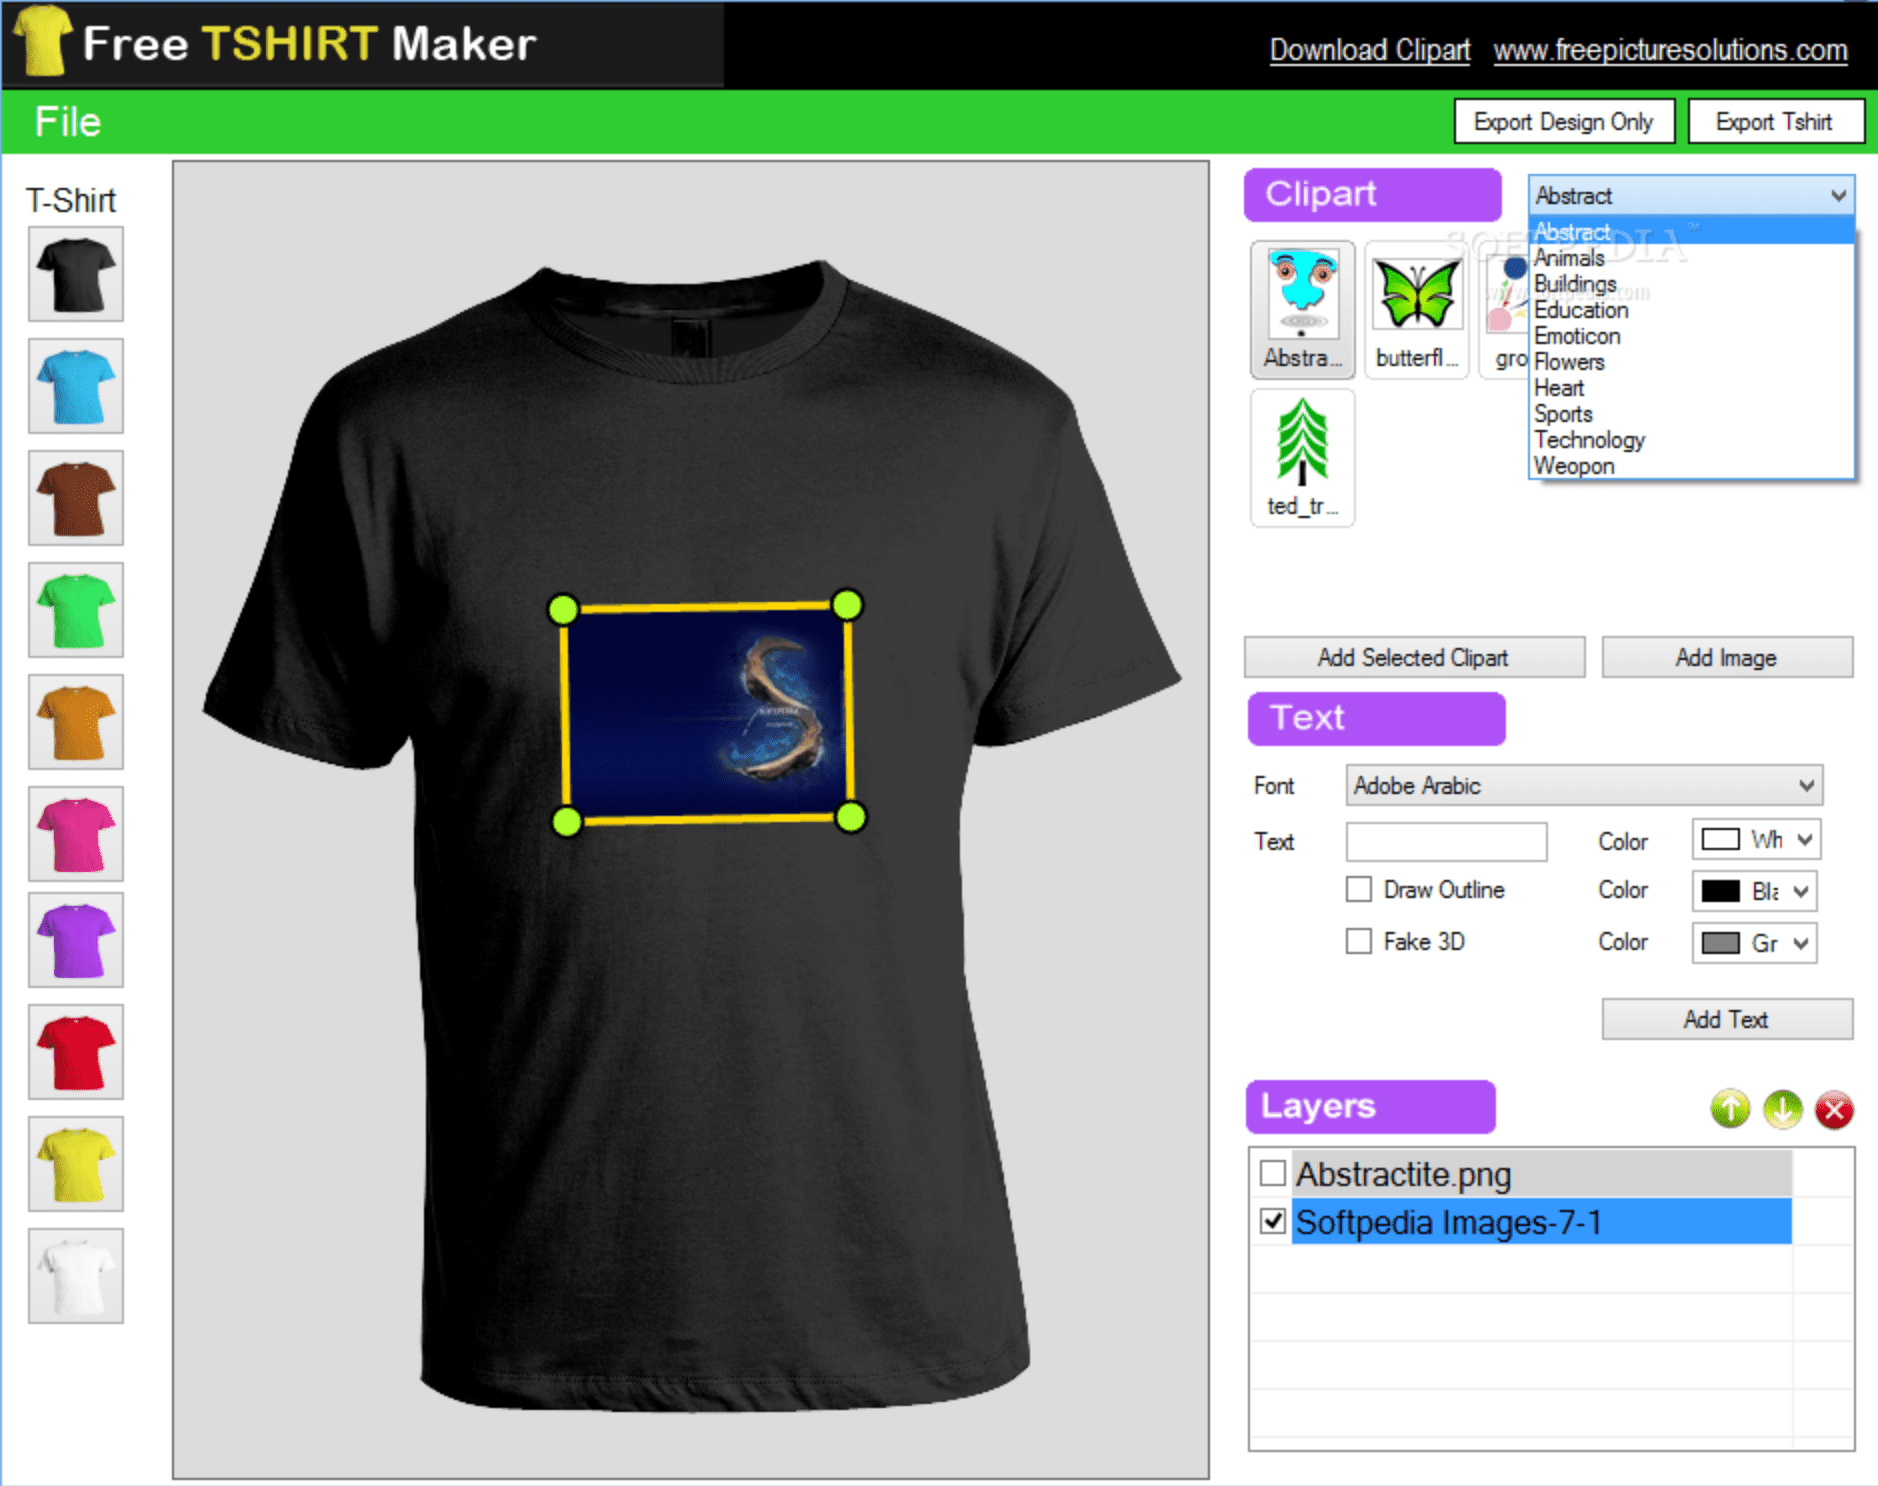 free tshirt maker software image